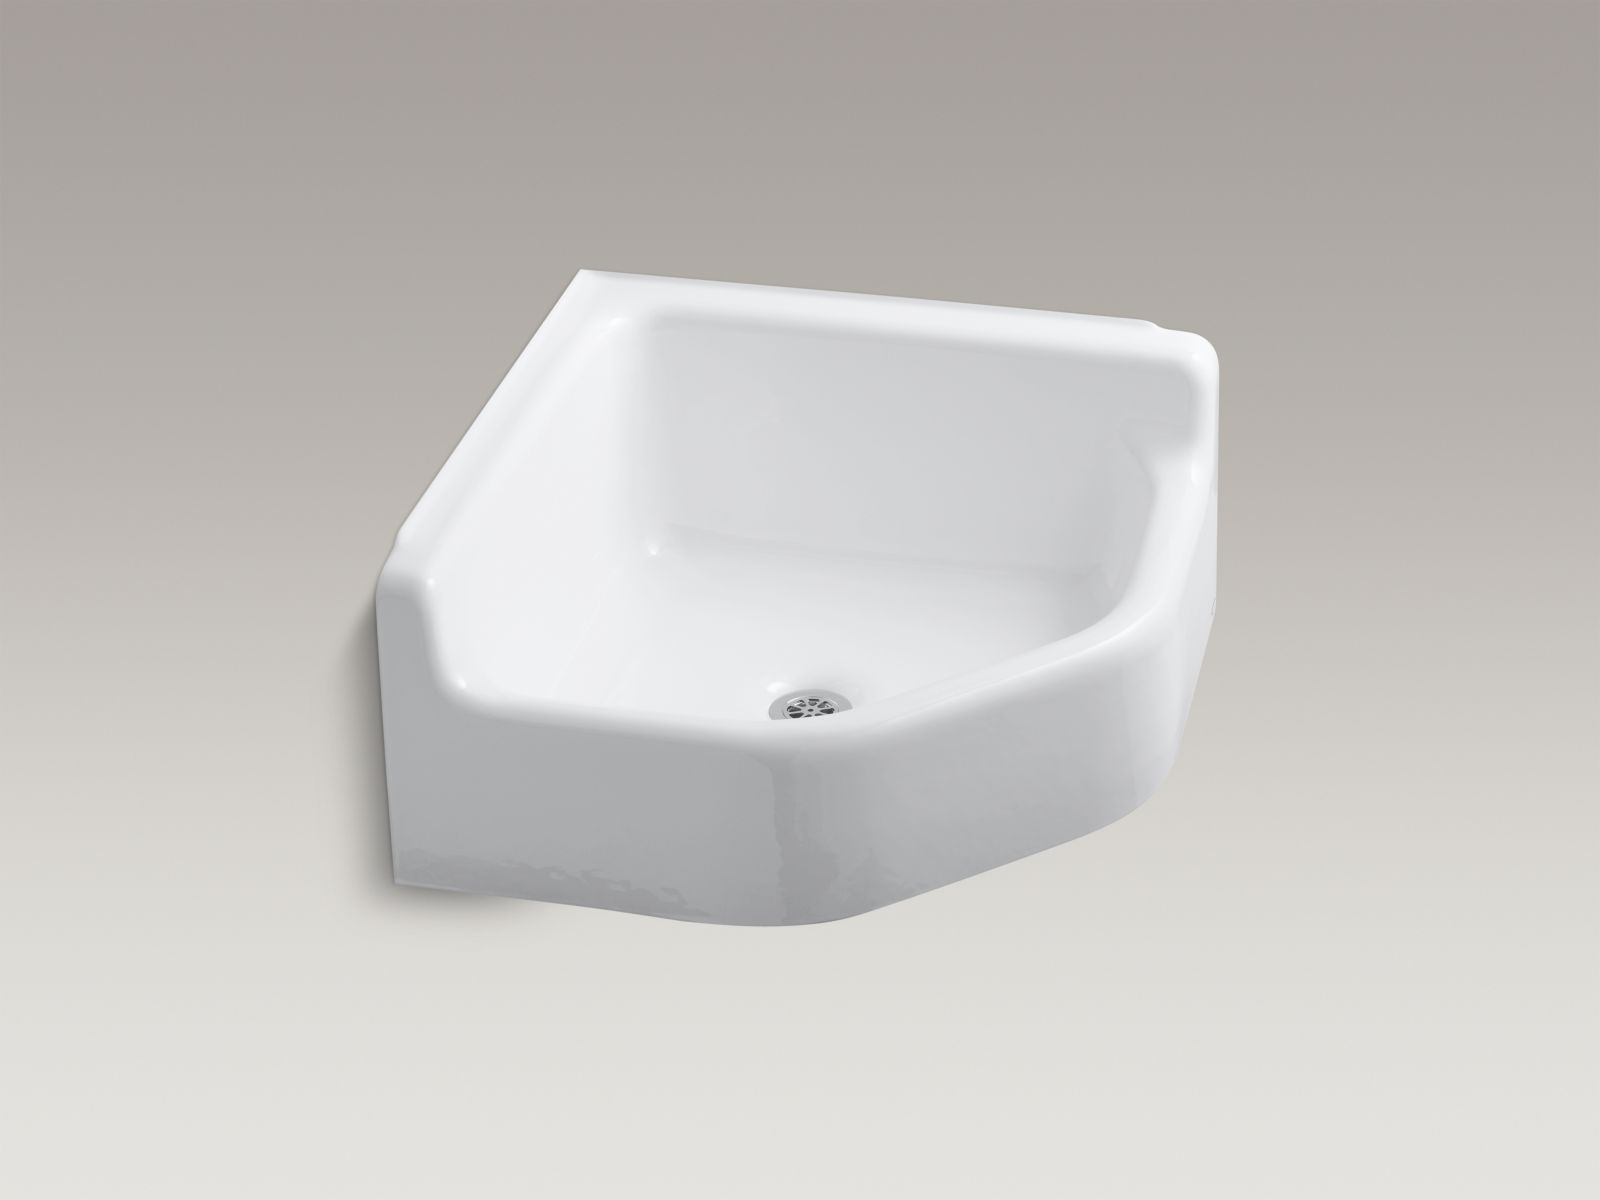 Kohler K-6710-0 Whitby Floor-mounted Corner Service Sink White